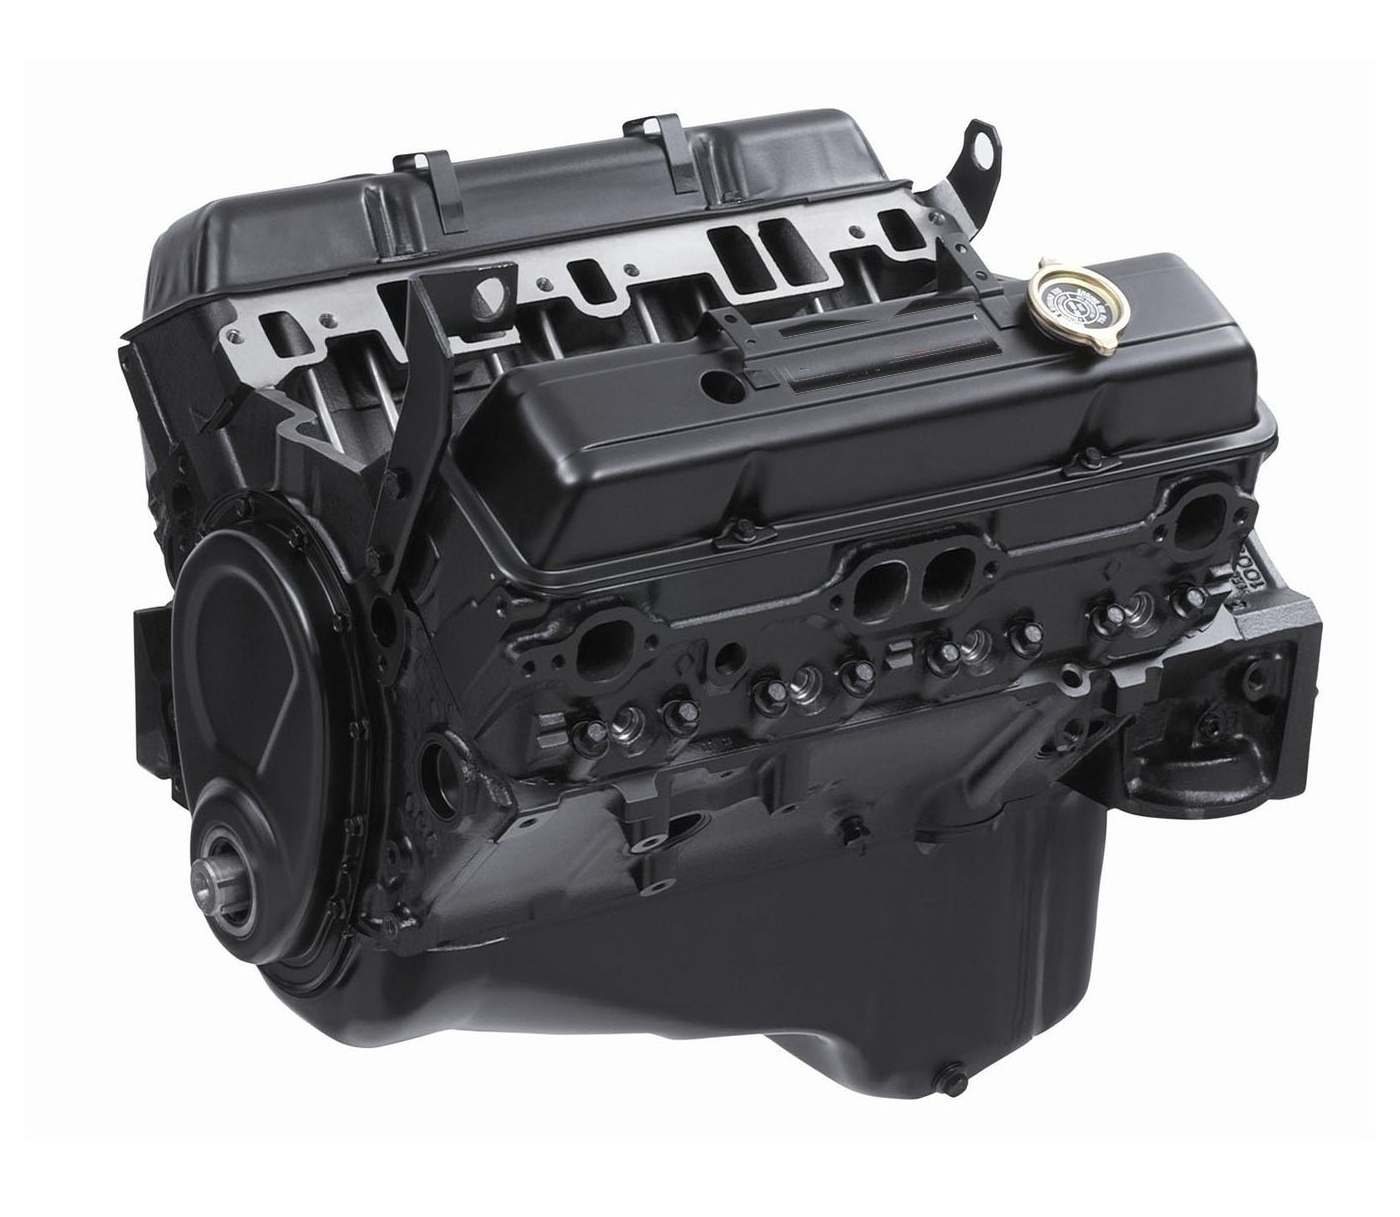 5.7L Reman Long Block Engine For GMC K2500